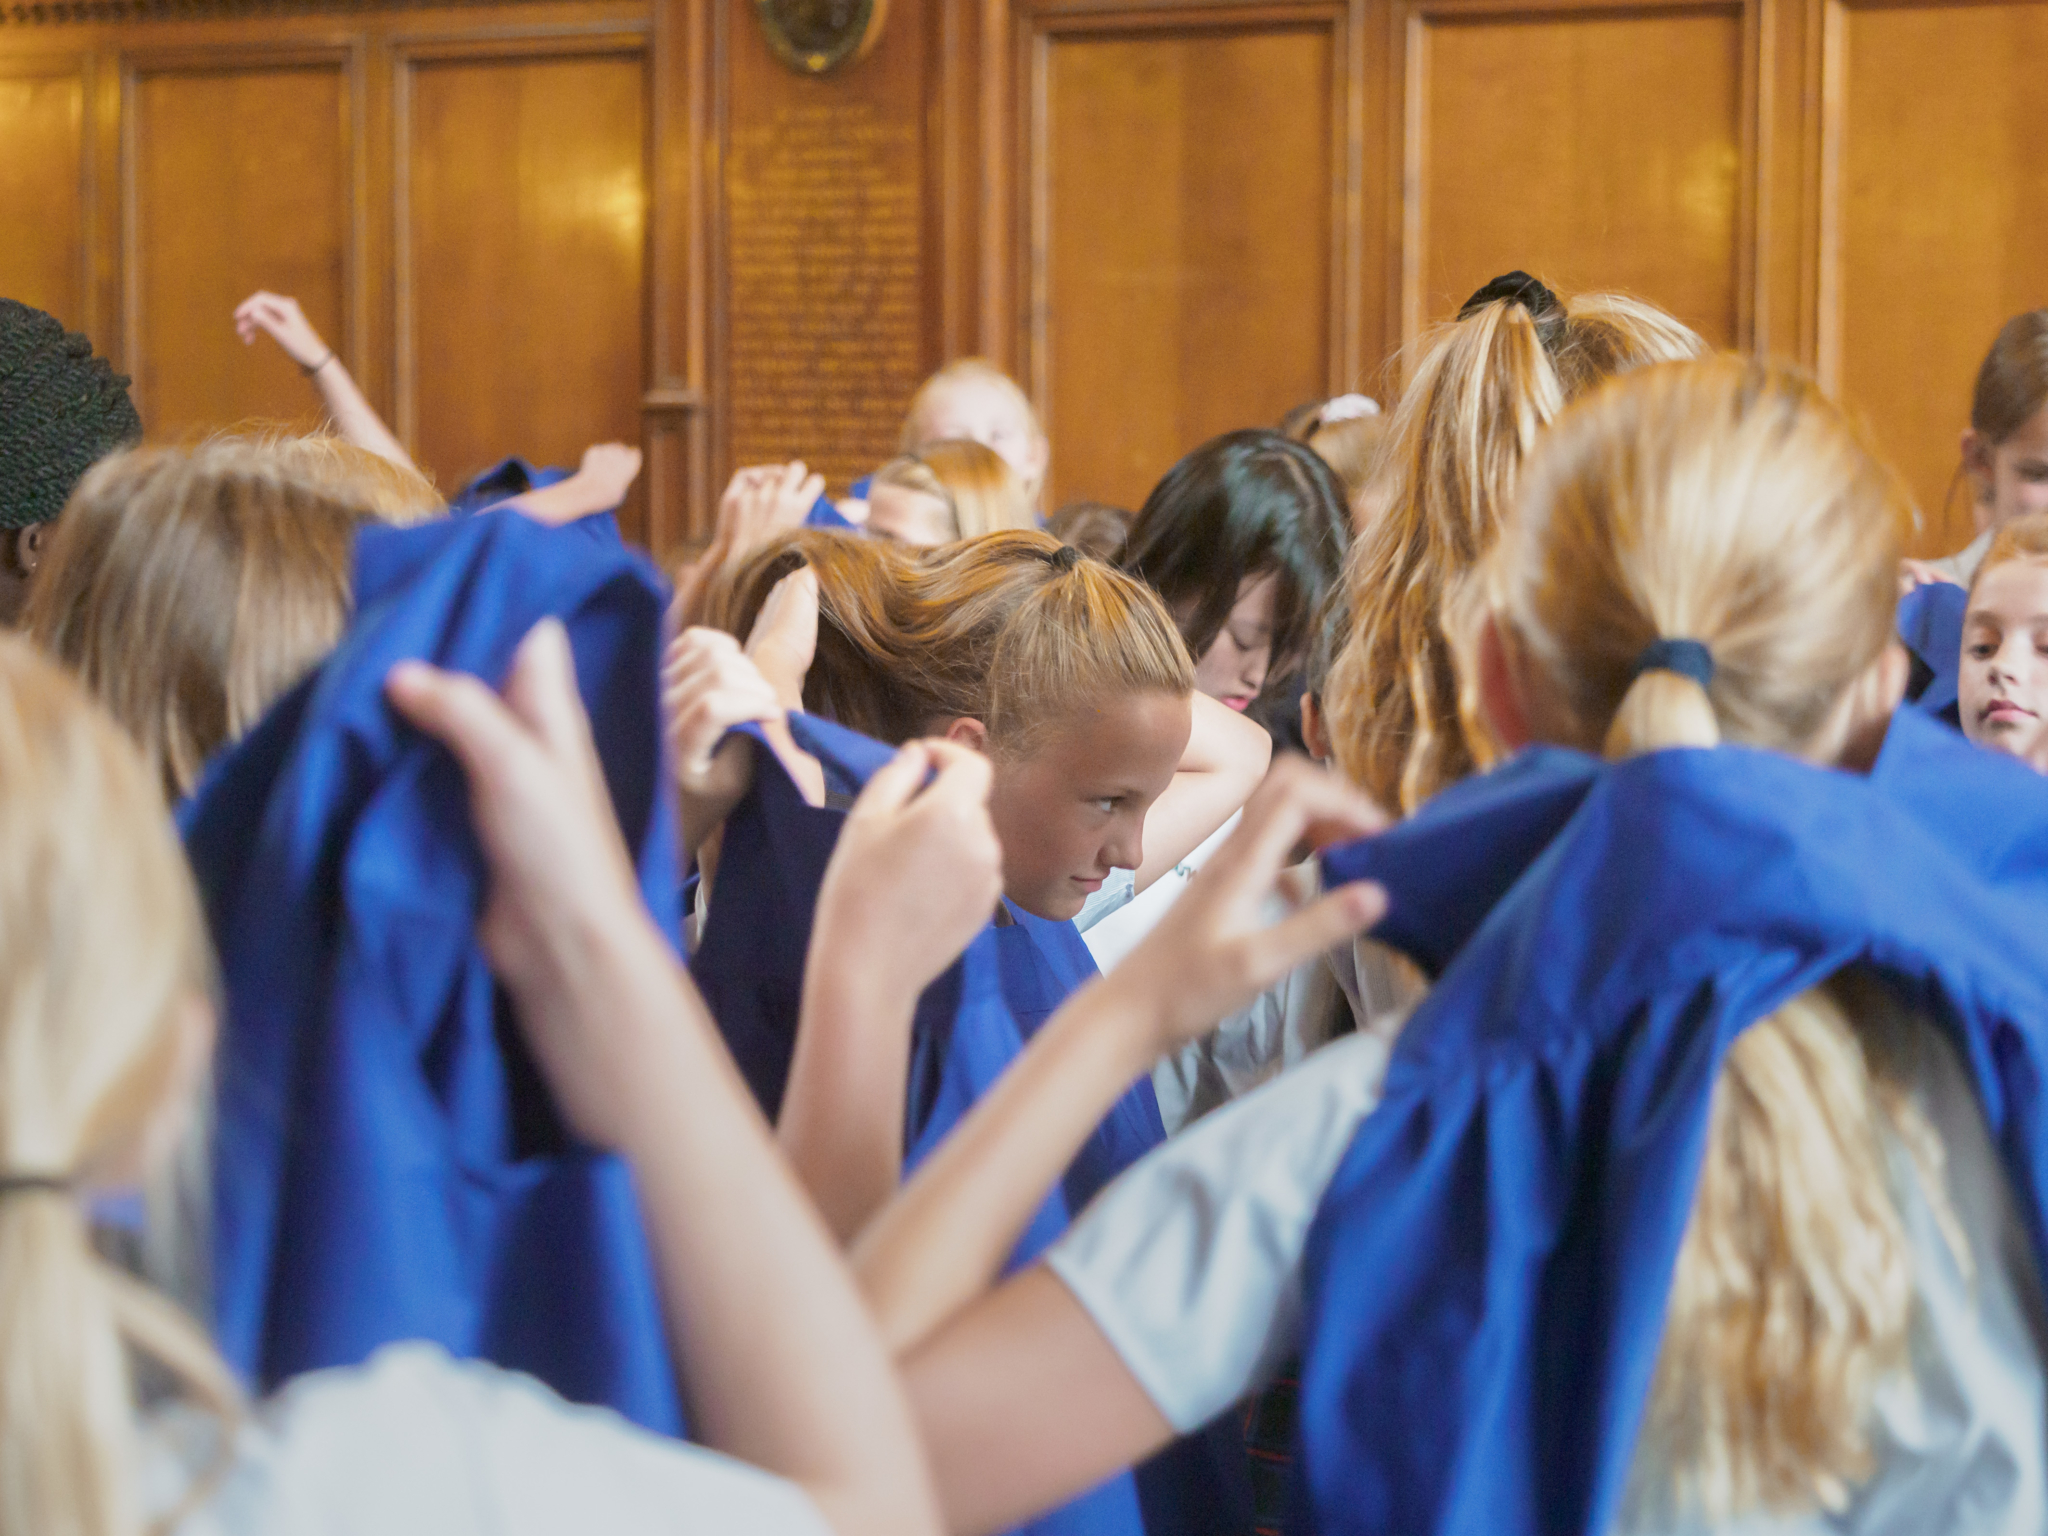 064 2Nd Sept2019 Godolphin School Photo By Ash Mills